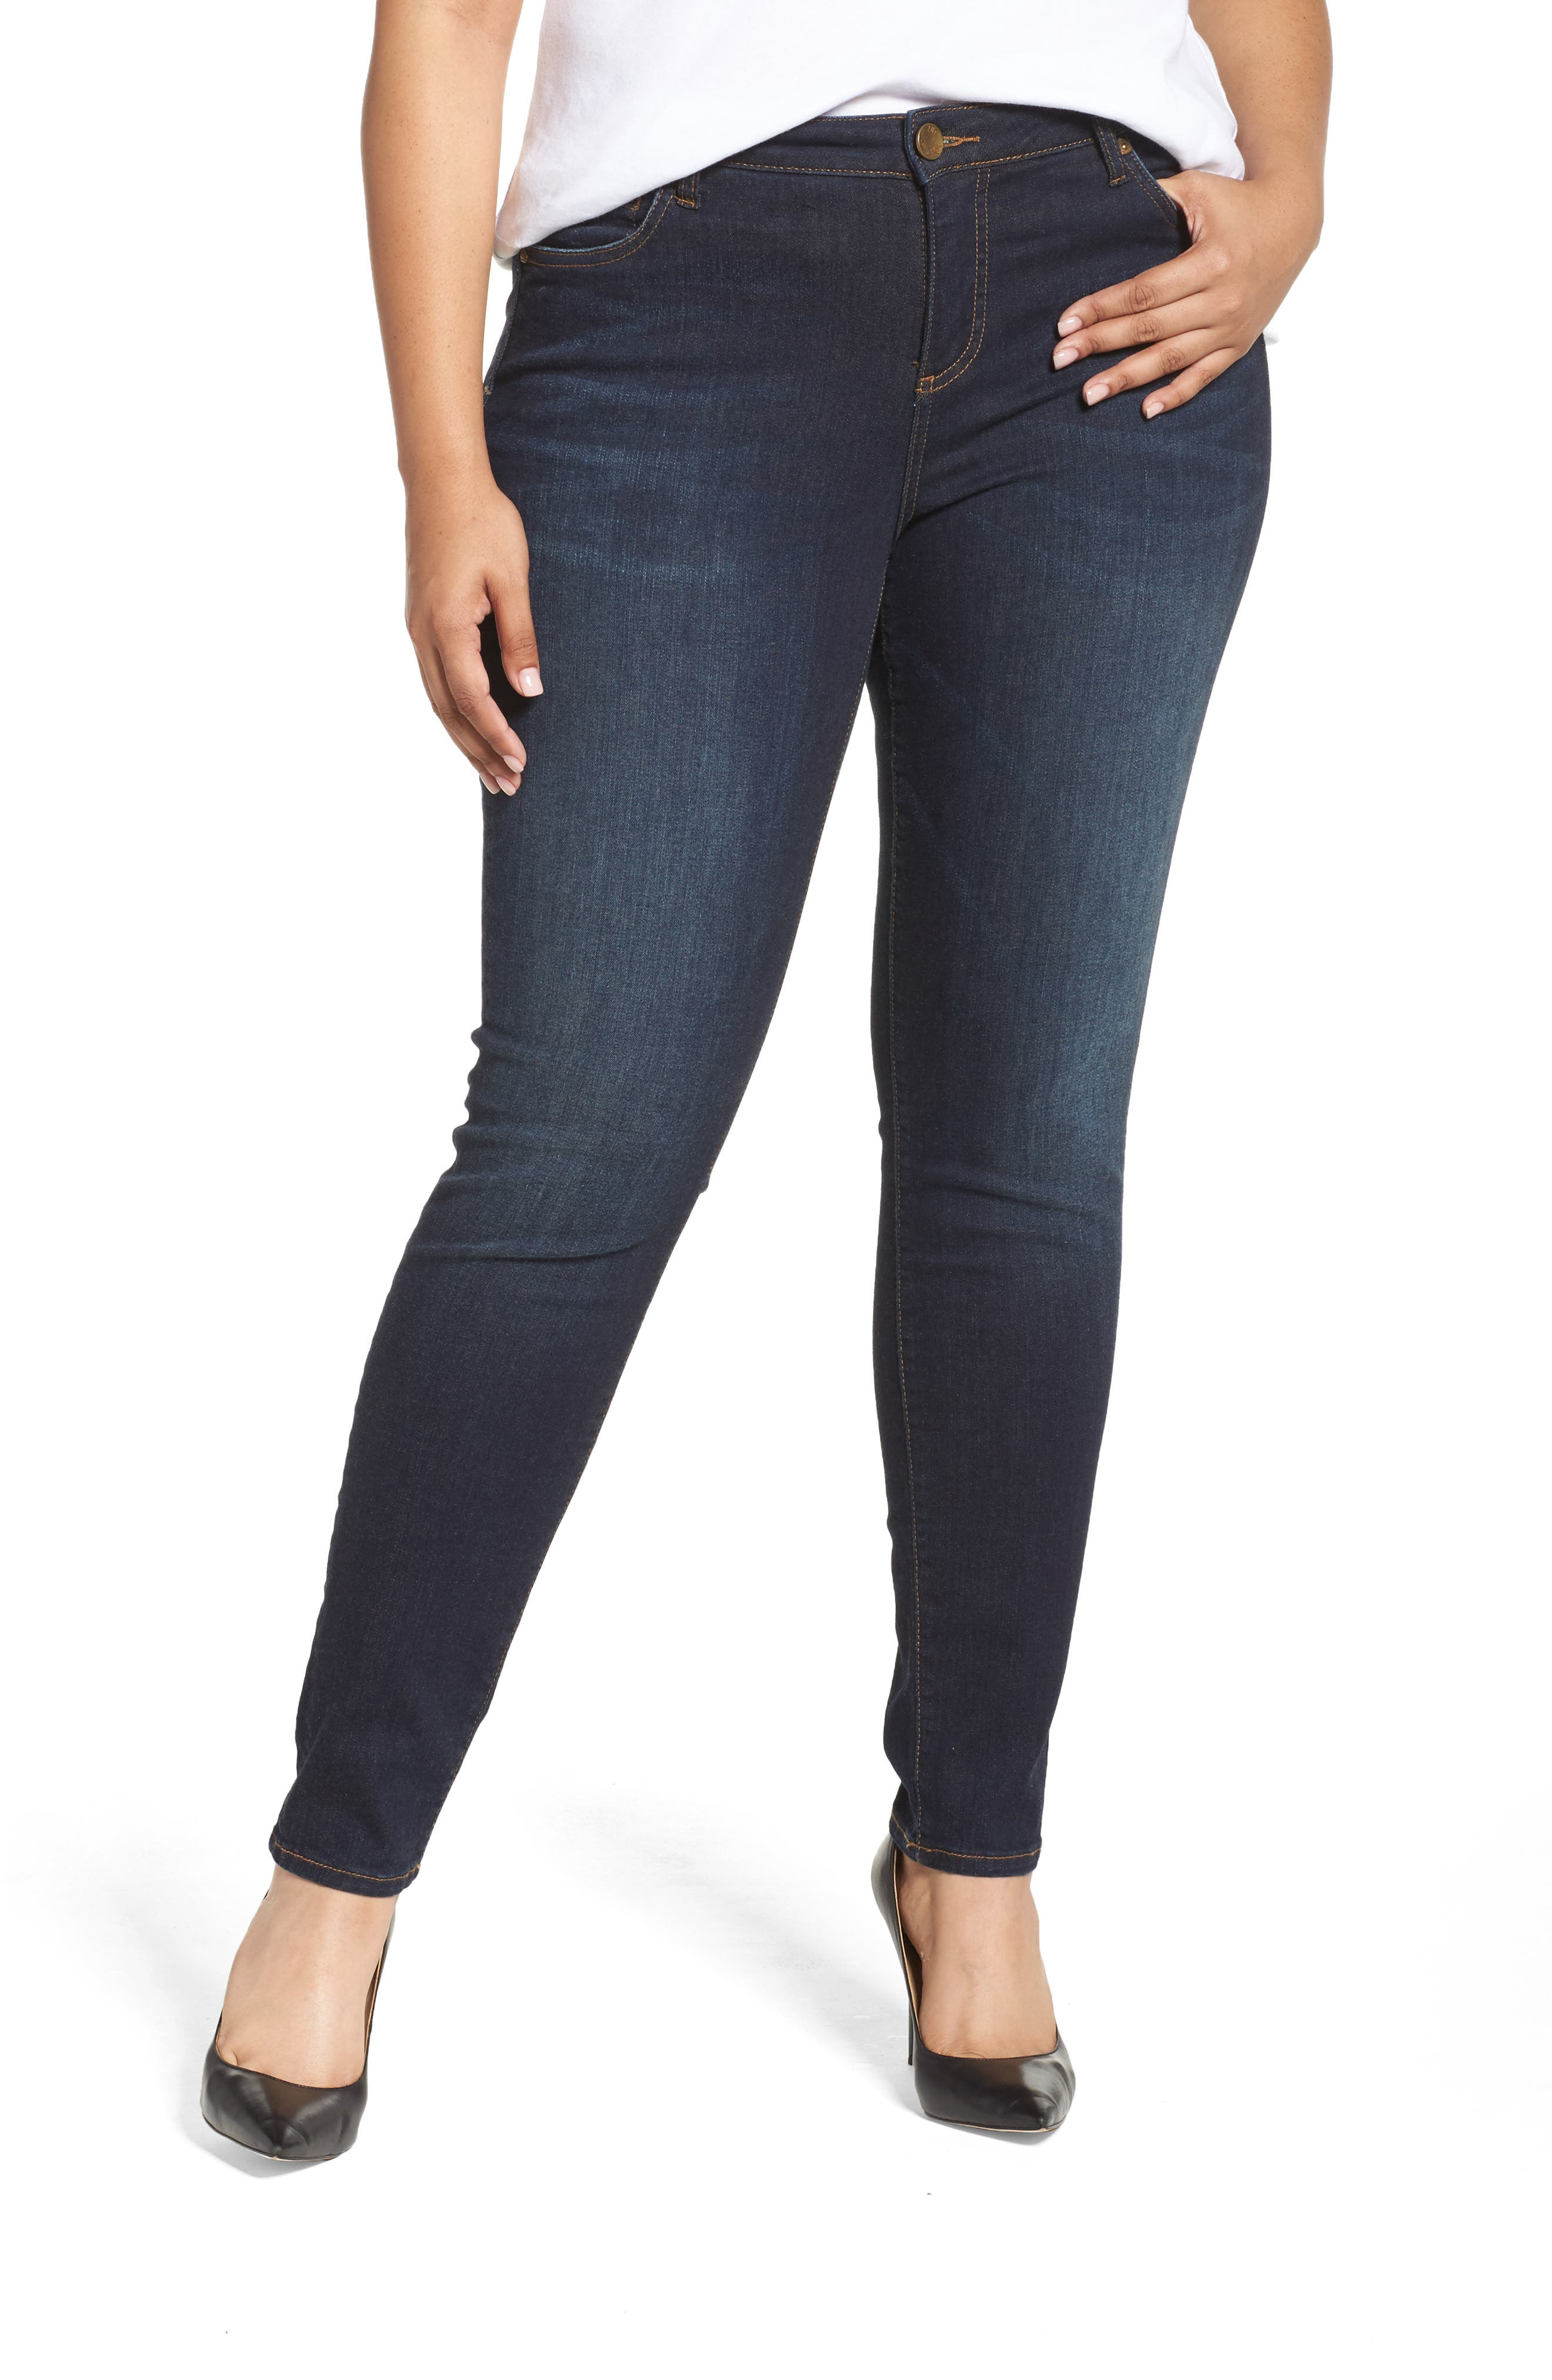 Alternate Image 1 Selected - KUT from the Kloth Diana Skinny Jeans (Blinding) (Plus Size)